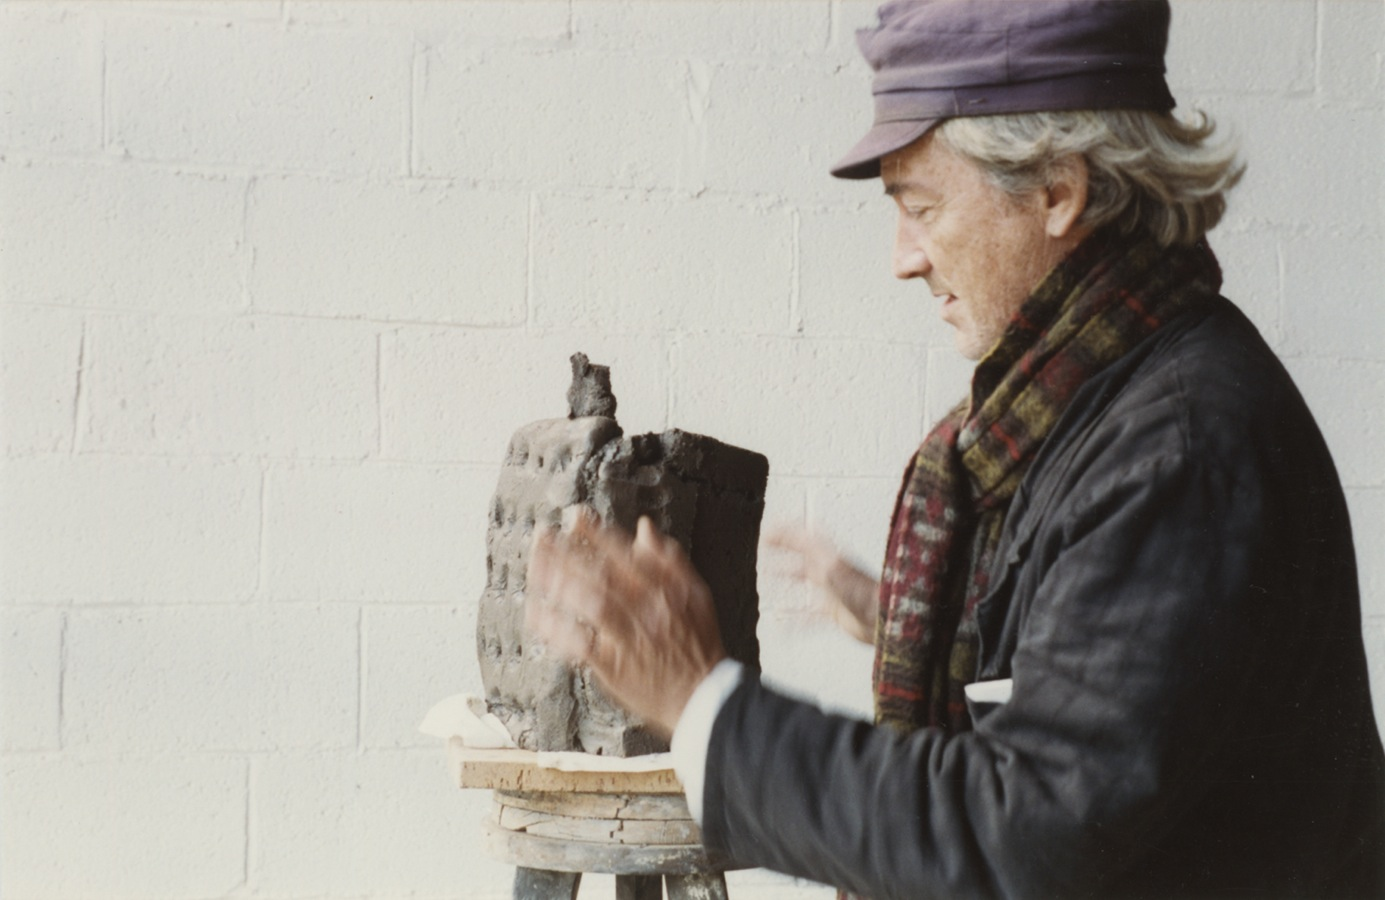 Barry Flanagan: An introduction to one of Britain's most inventive sculptors